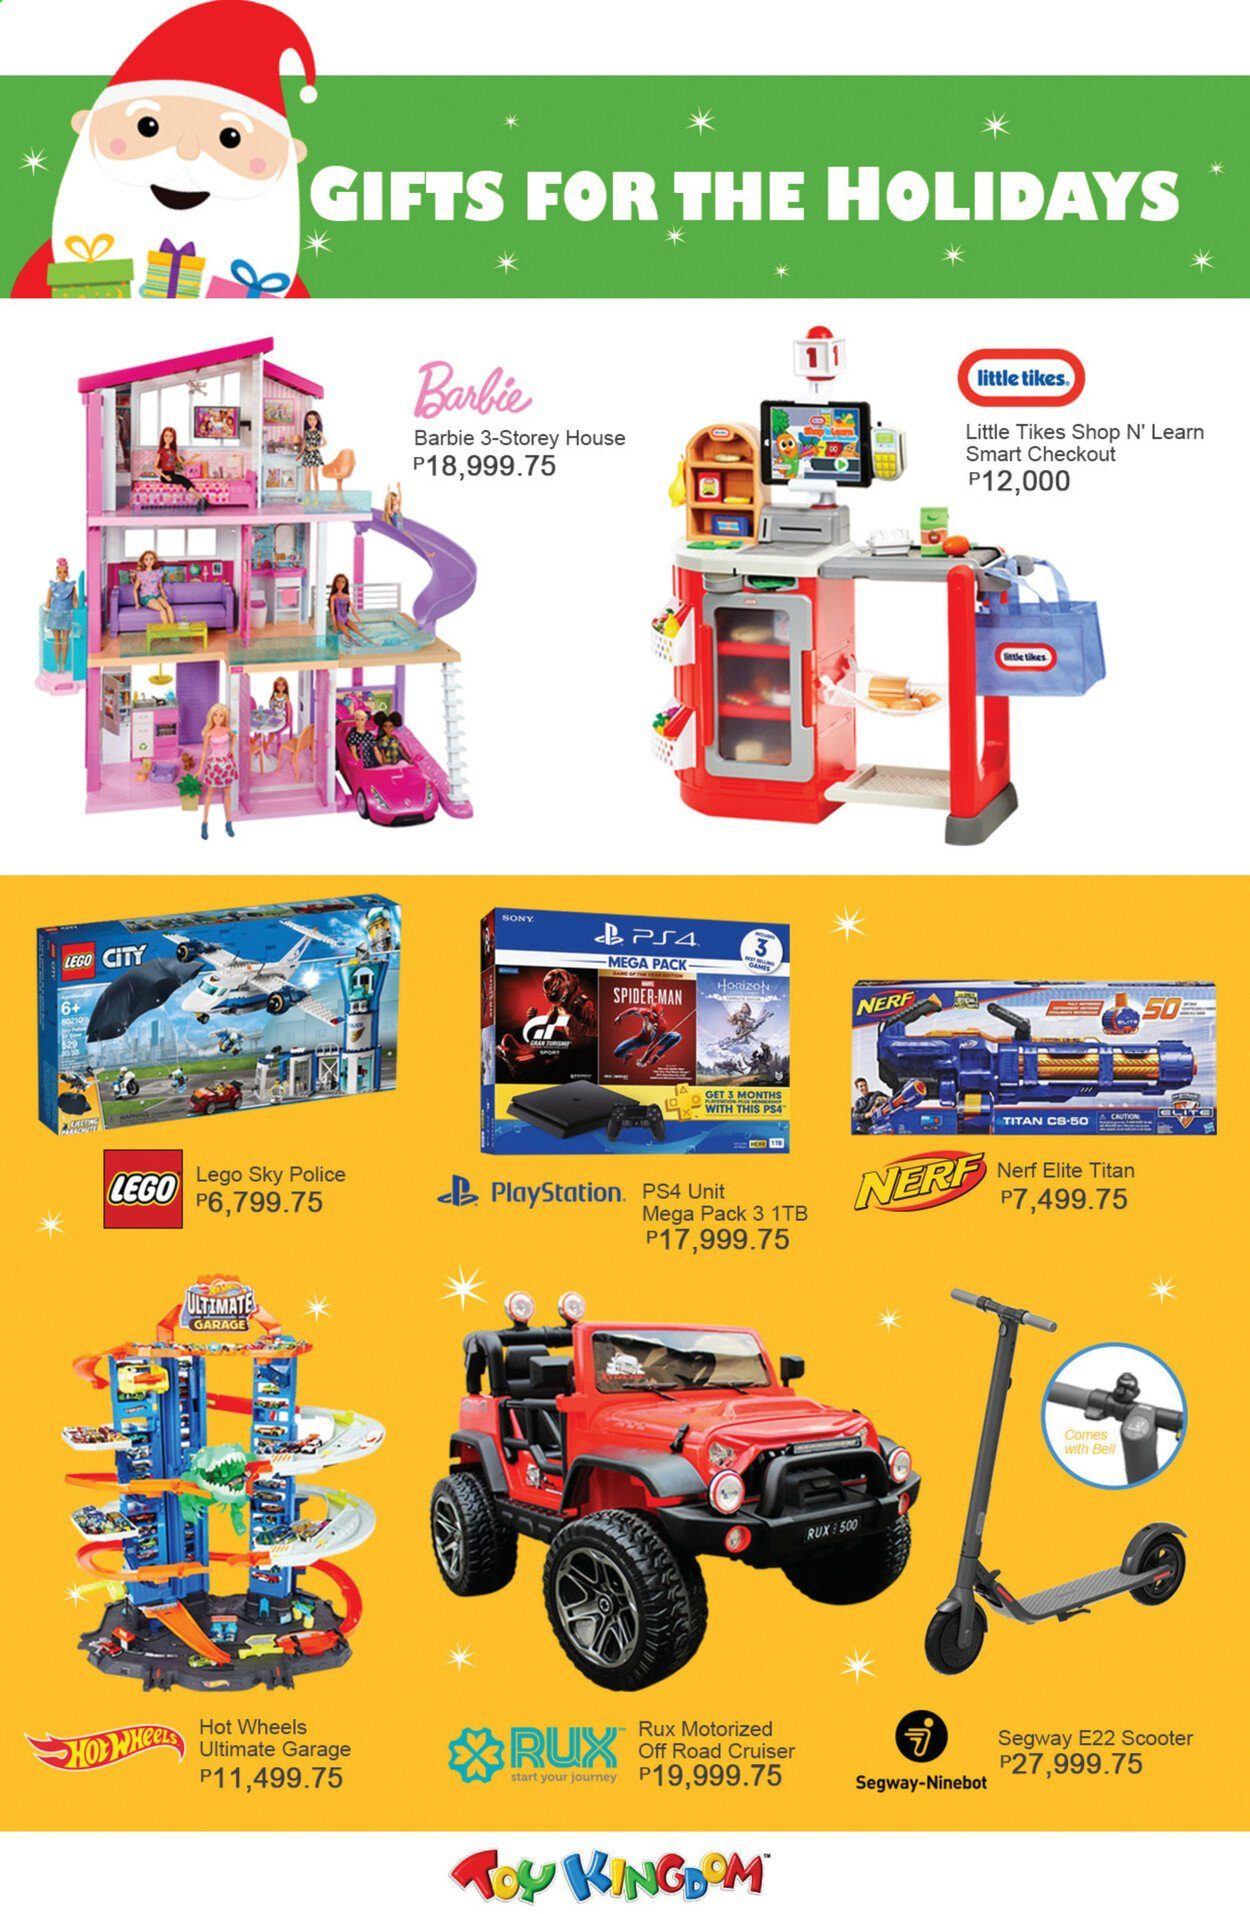 Toy Kingdom offer  - Sales products - Barbie, LEGO, LEGO City, Nerf, Hot Wheels, Little Tikes, PlayStation 4, cruiser. Page 2.